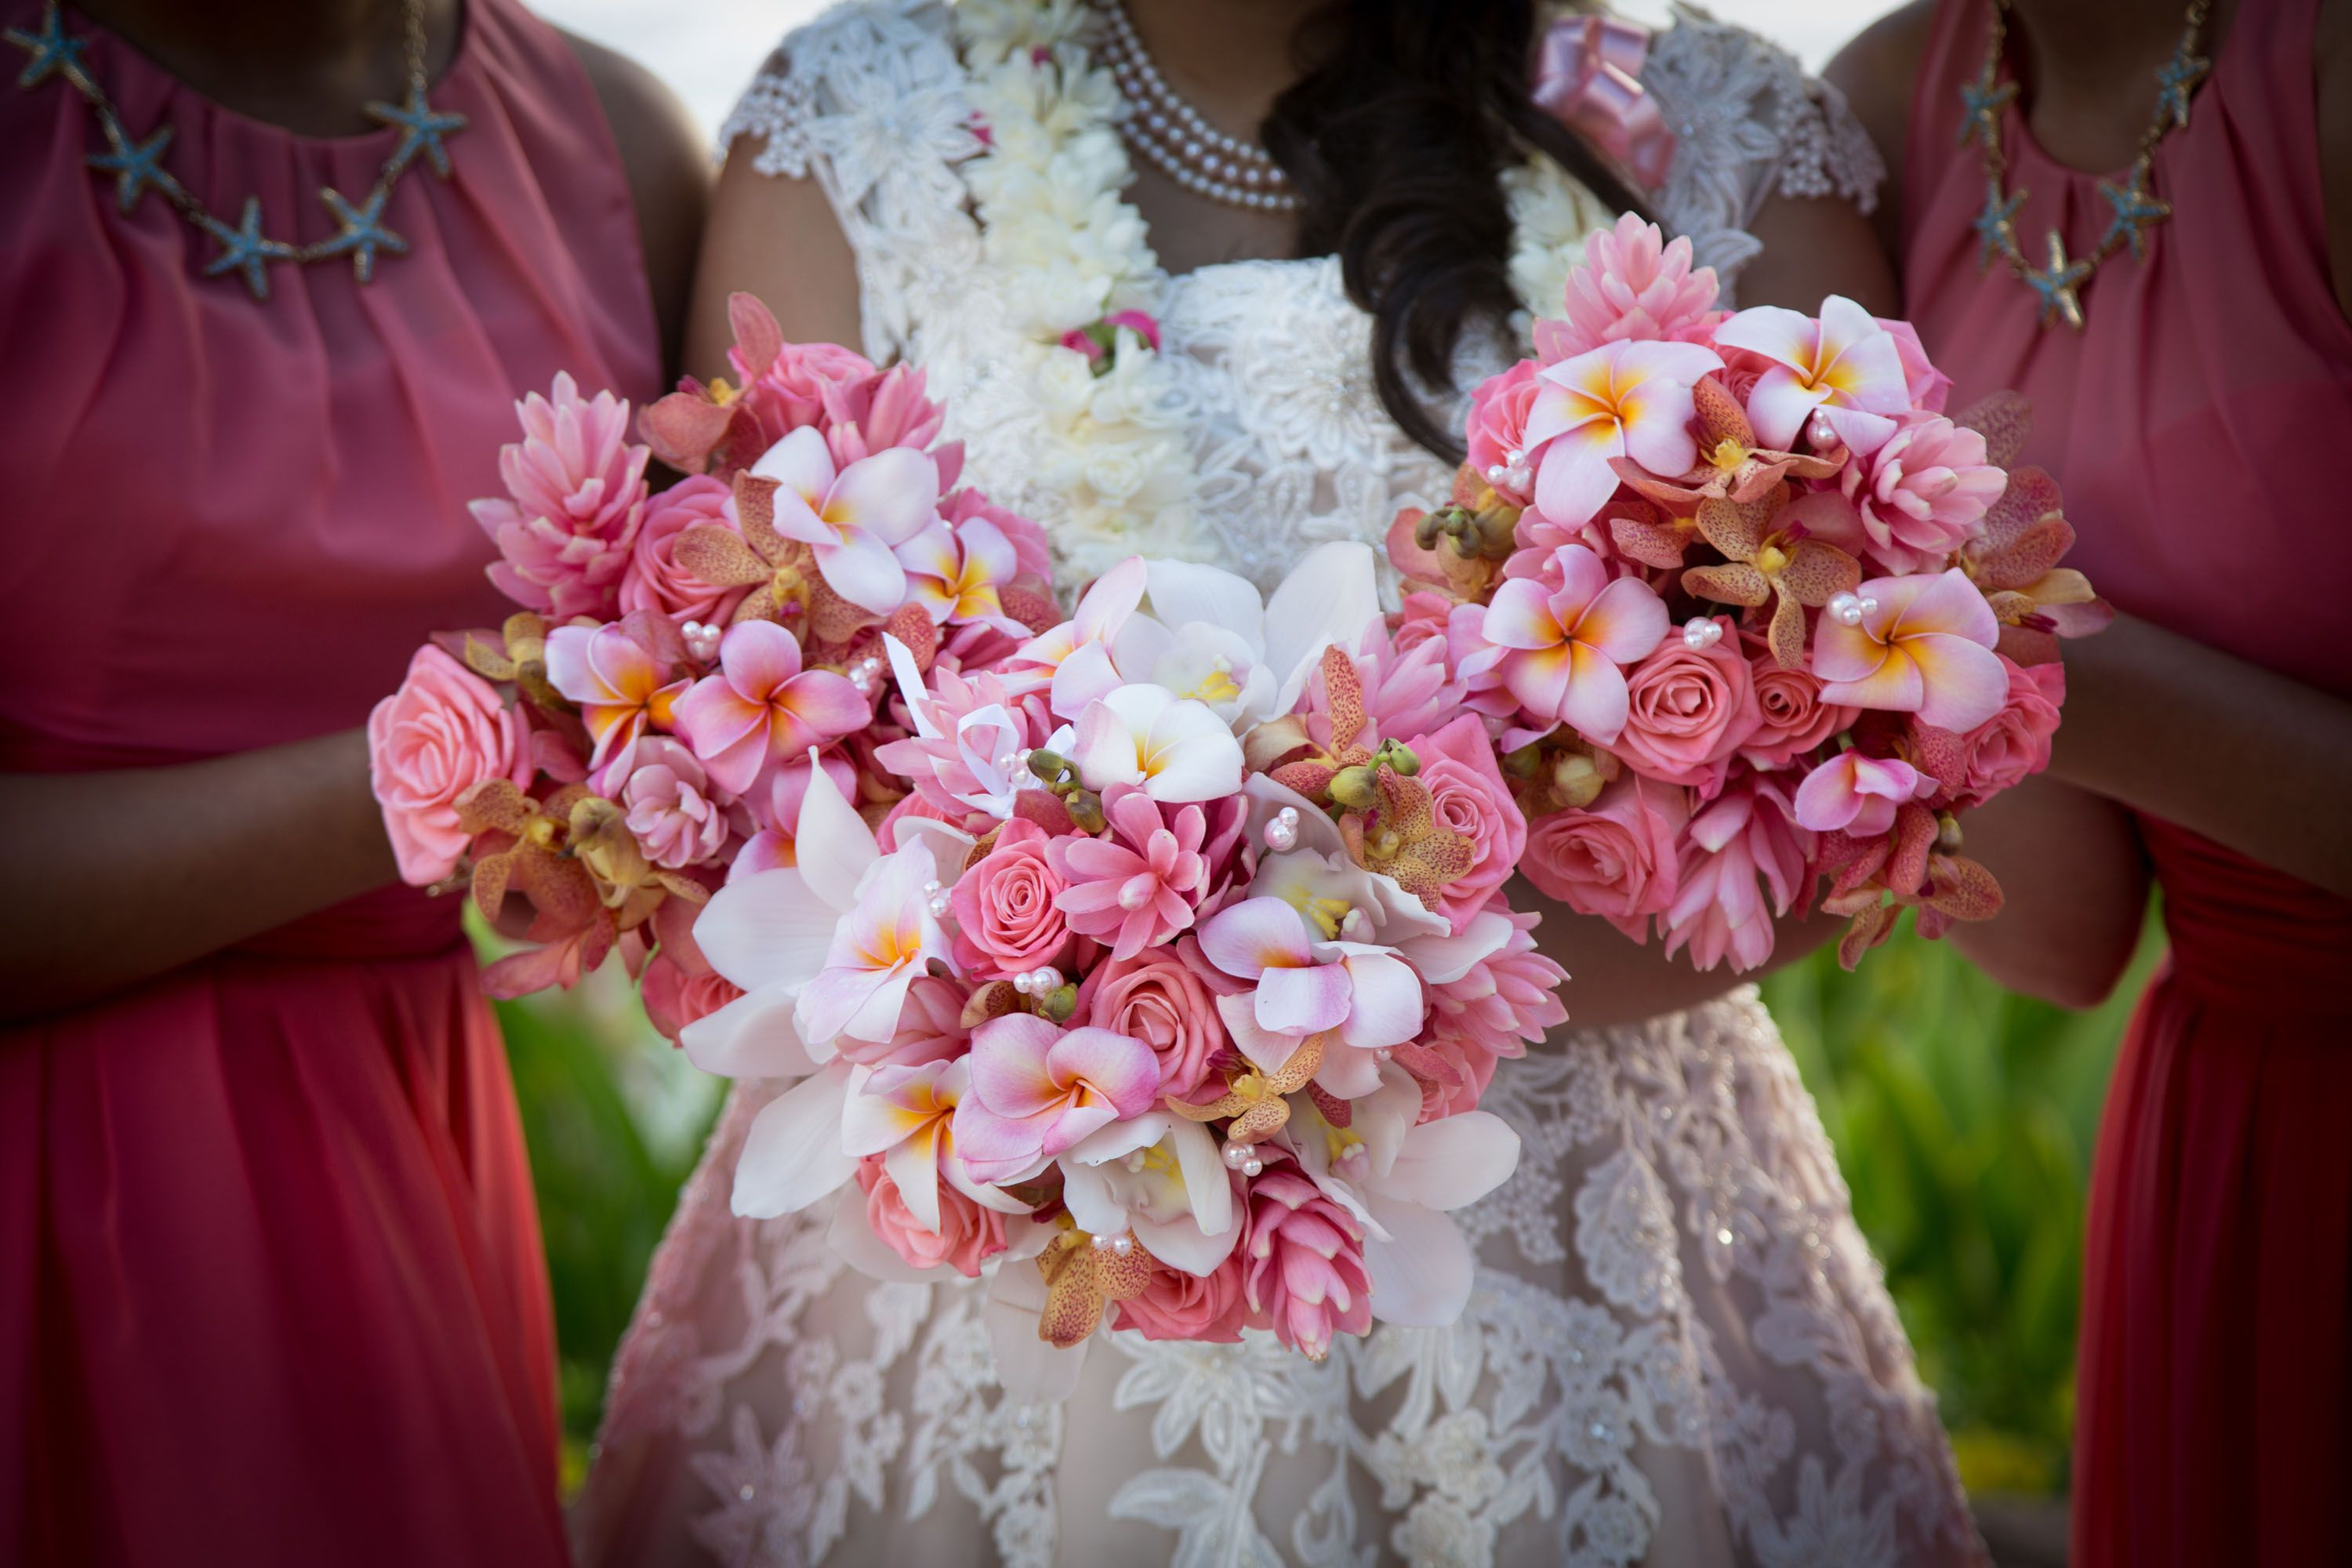 Tropical pink bride and bridesmaid bouquets for an Aulani wedding ...